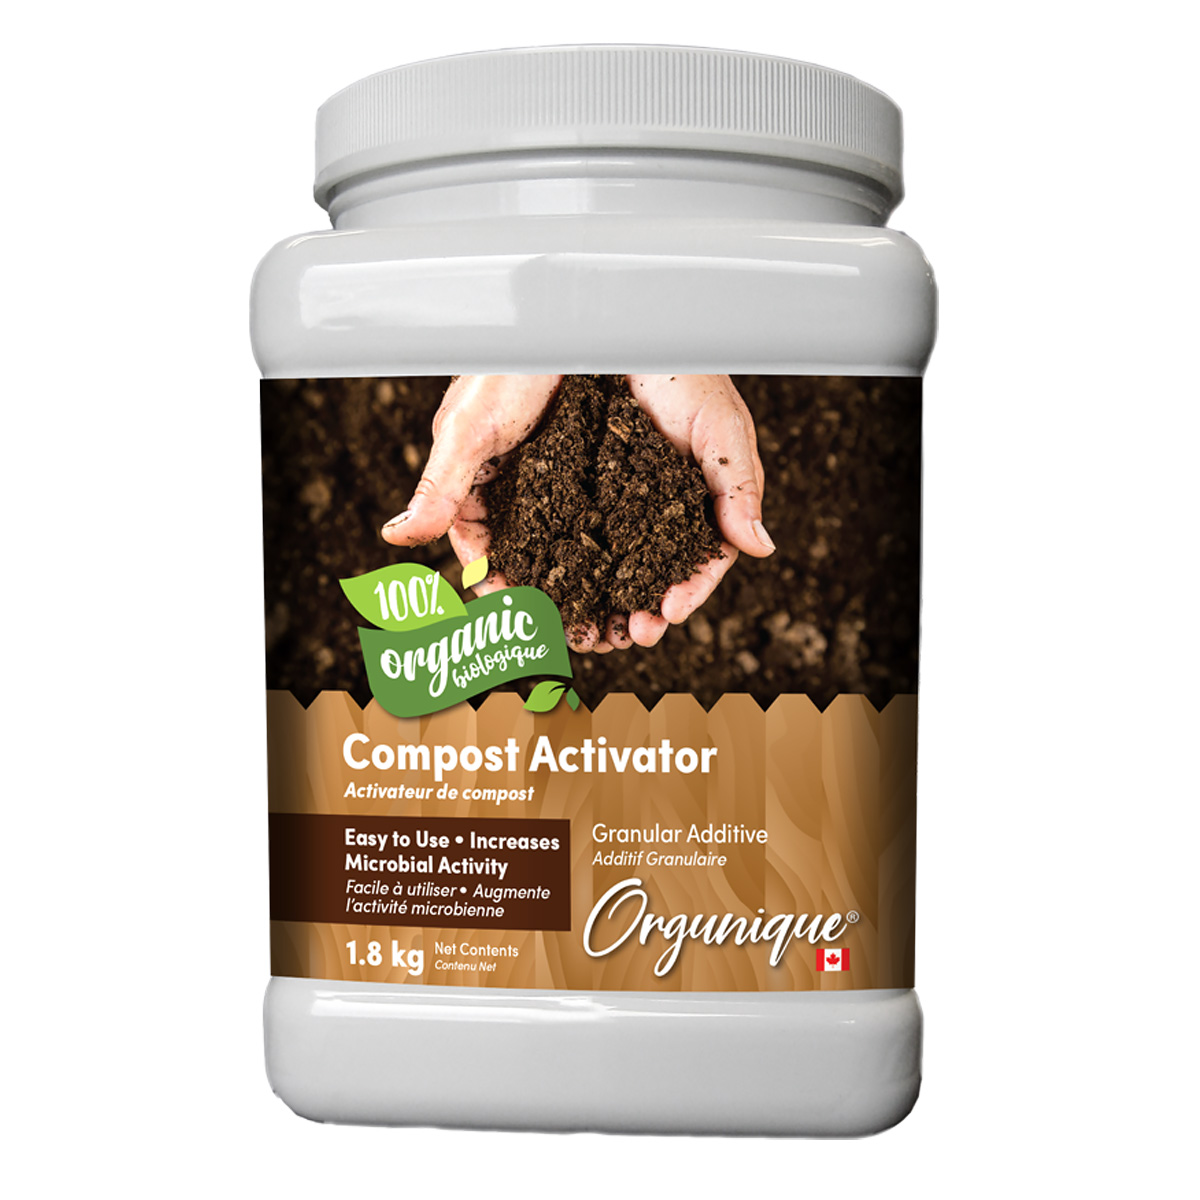 Orgunique Compost Activator 1800g